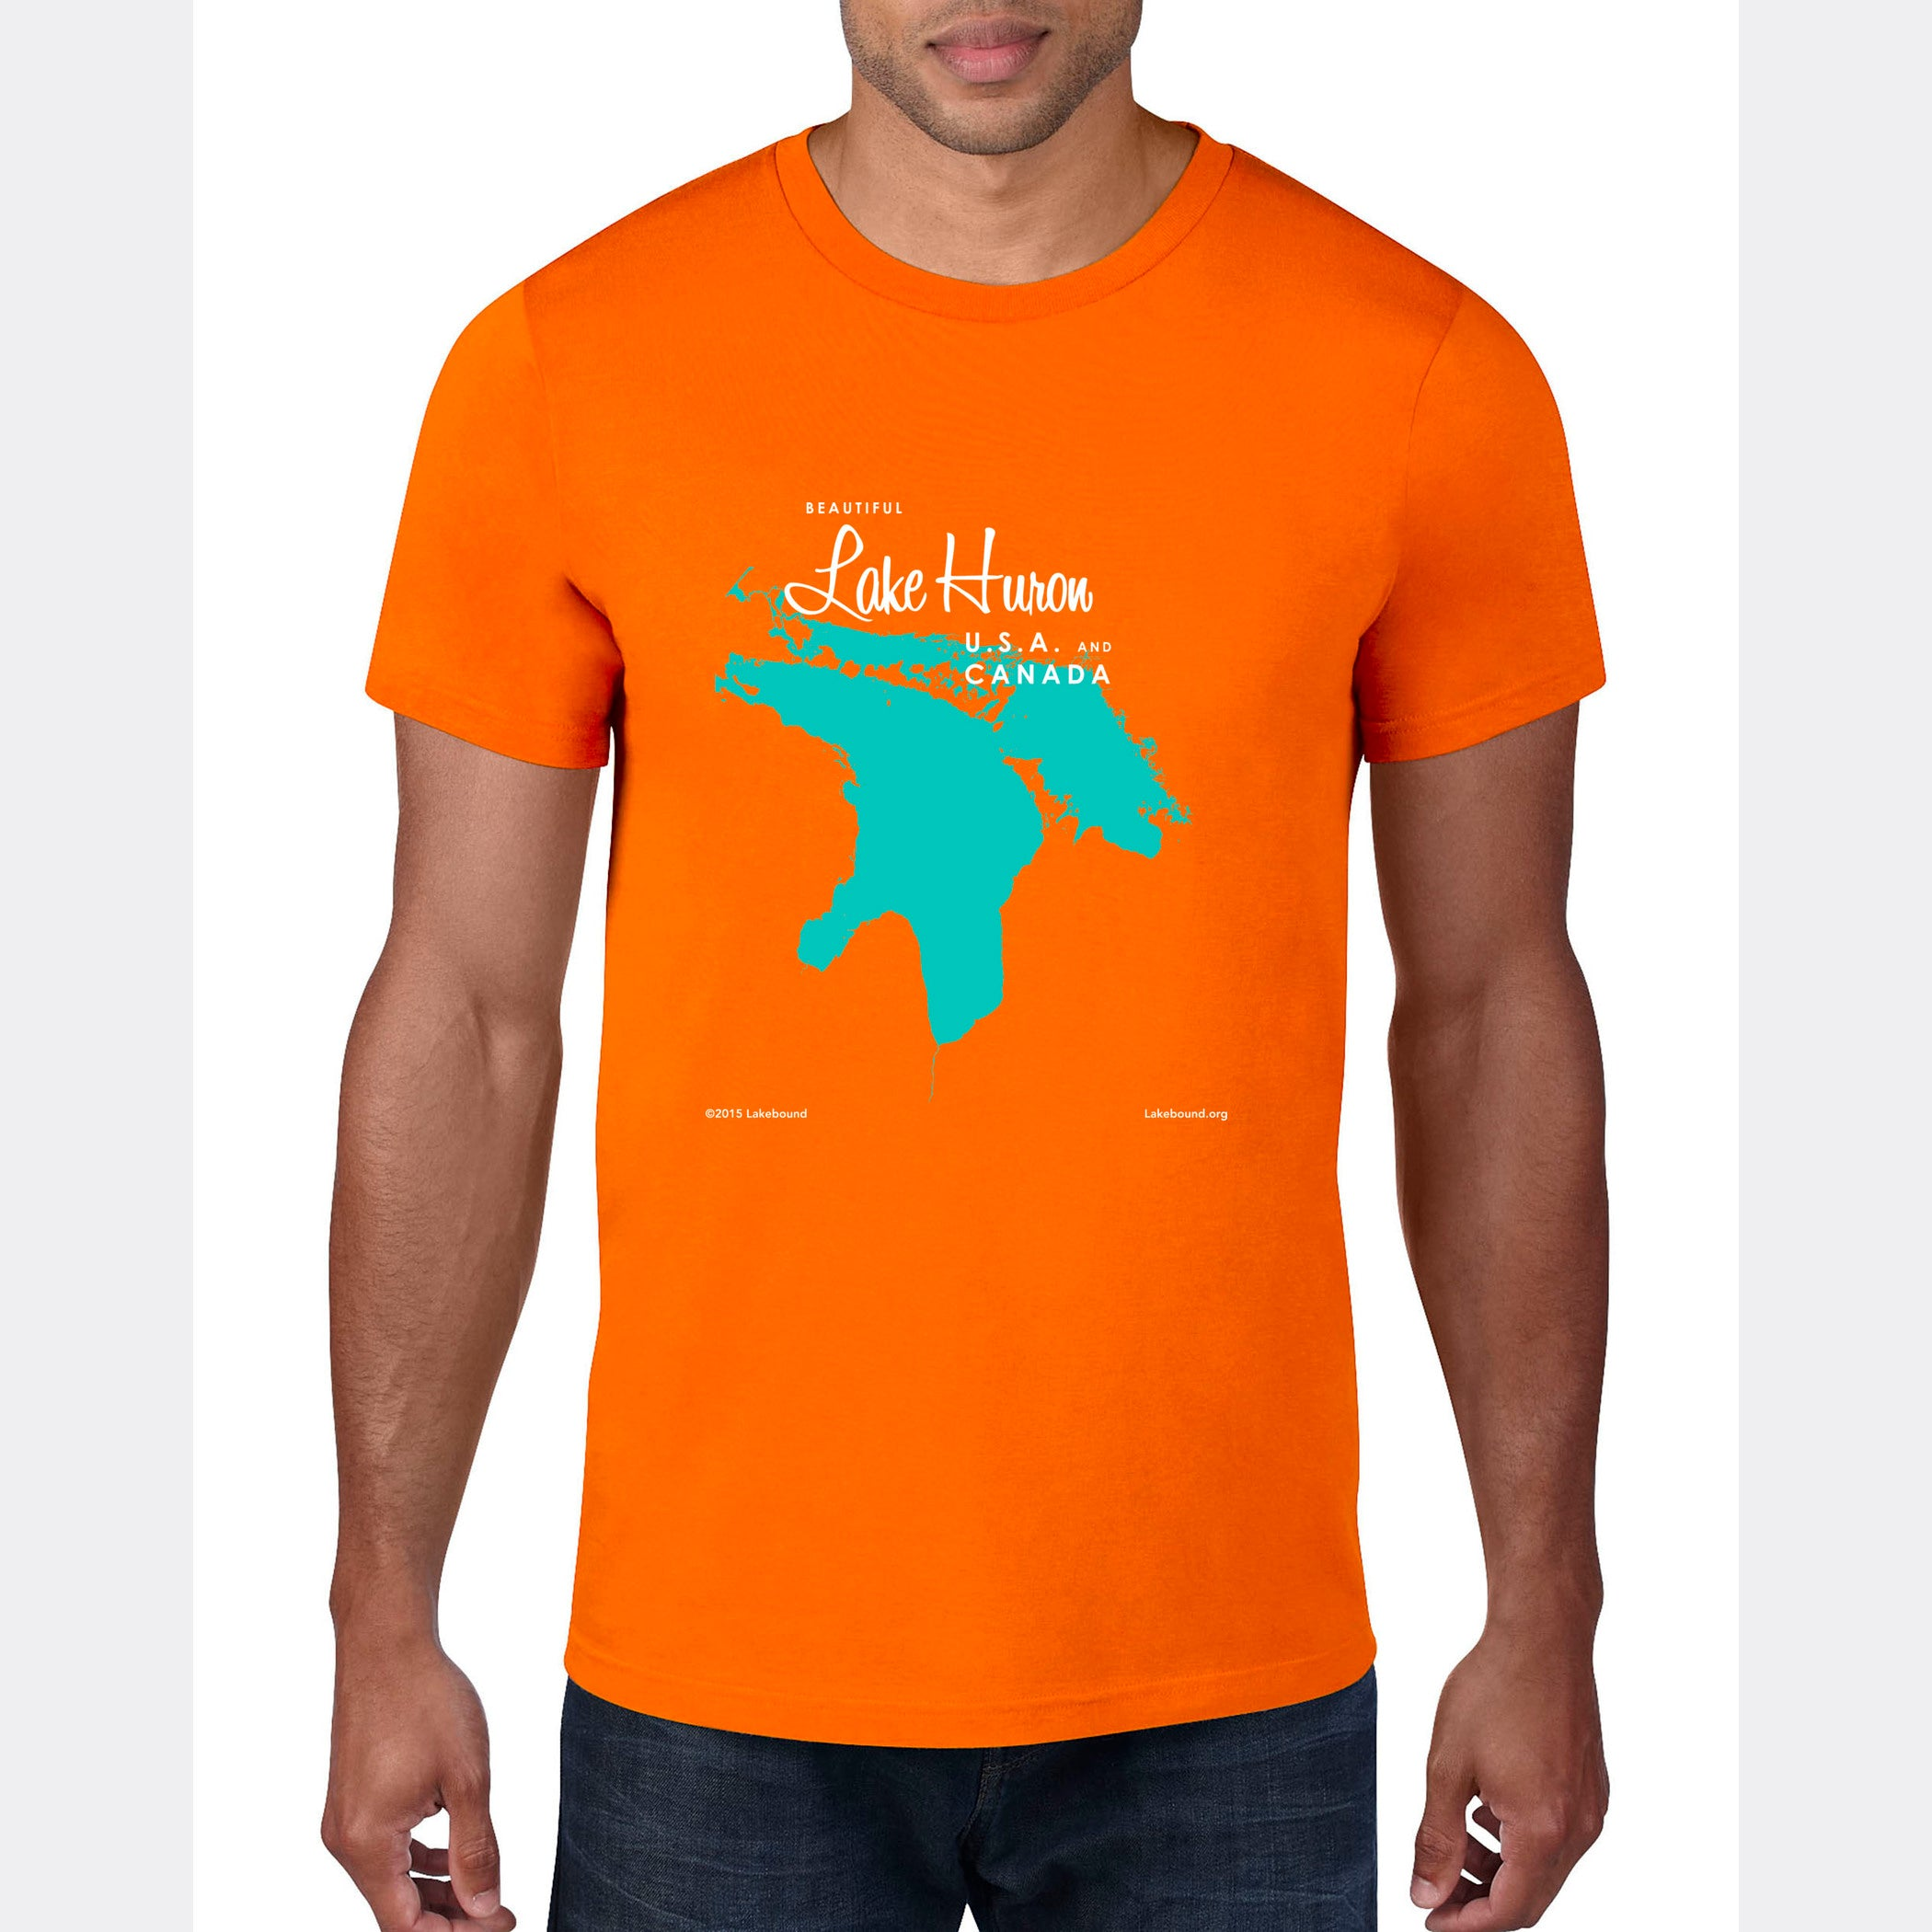 Lake Huron USA Canada, T-Shirt